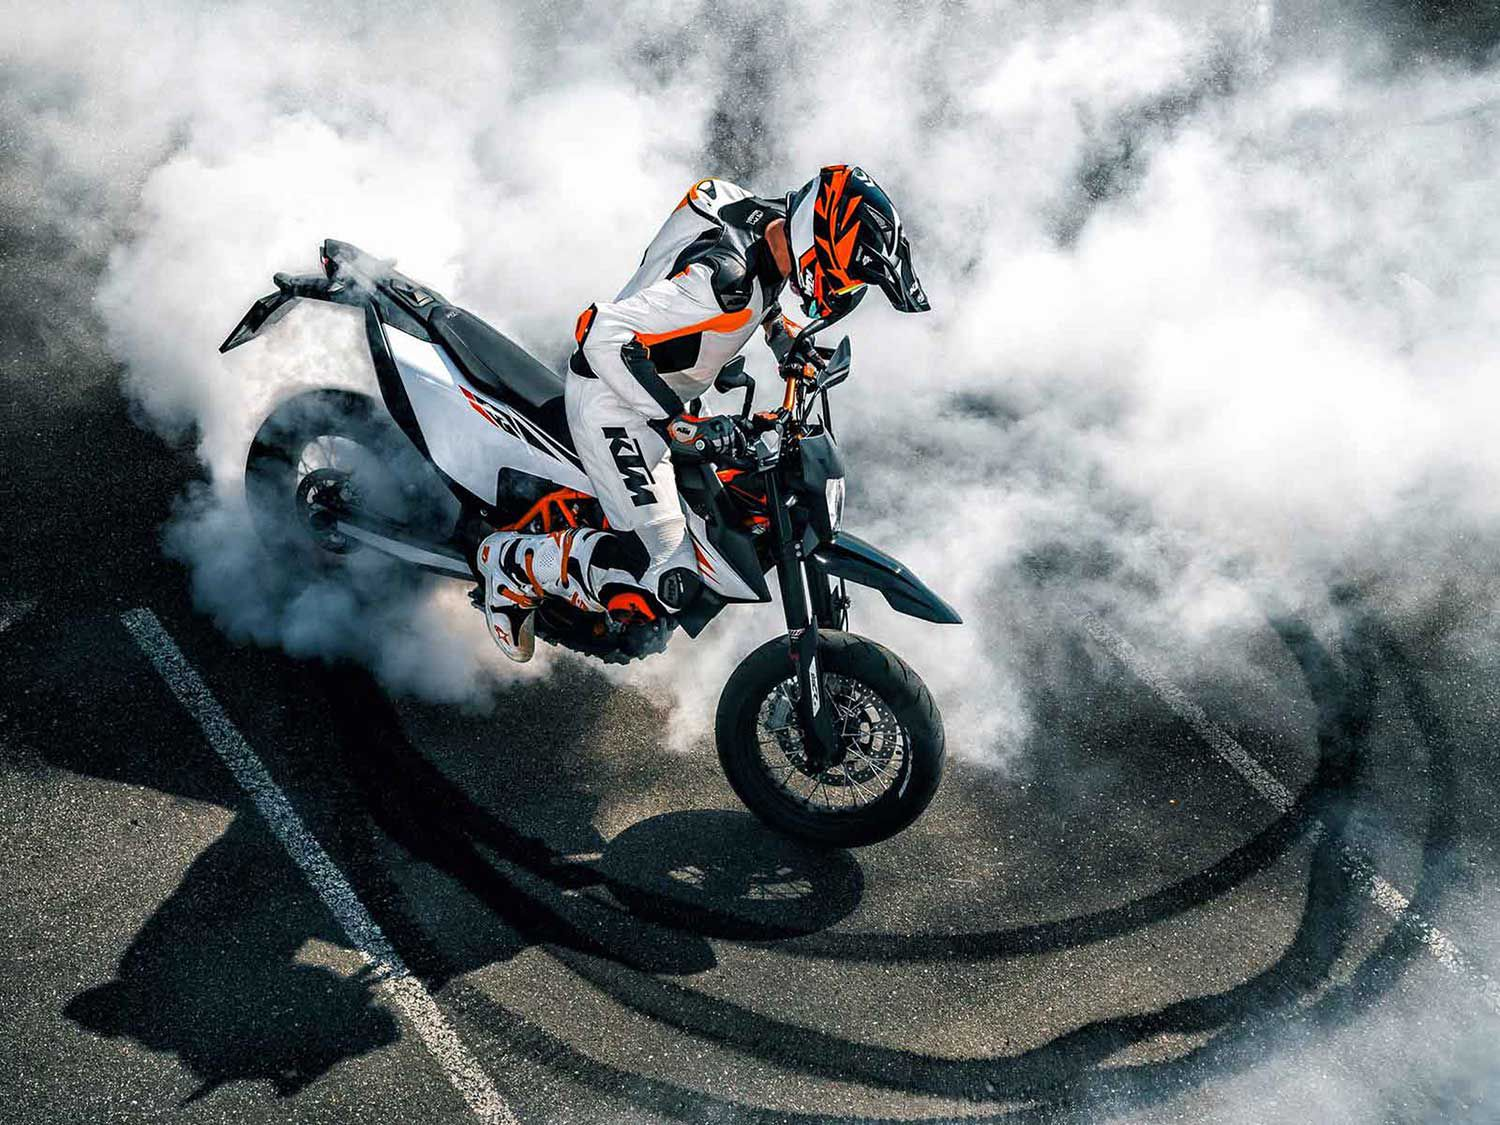 A KTM 690 SMC R in its natural habitat, amid burnt rubber and tire smoke.